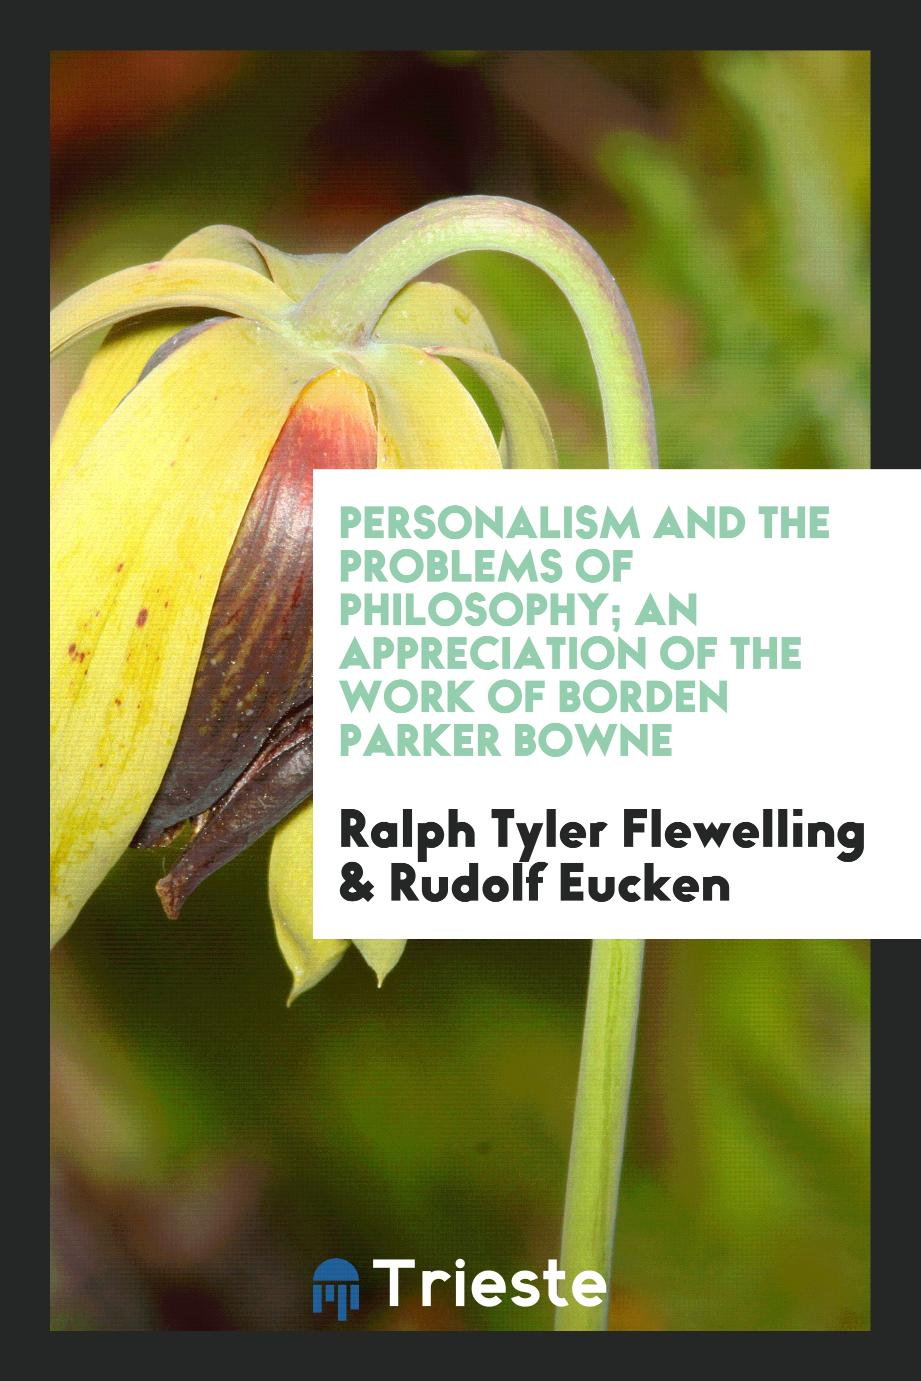 Personalism and the problems of philosophy; an appreciation of the work of Borden Parker Bowne